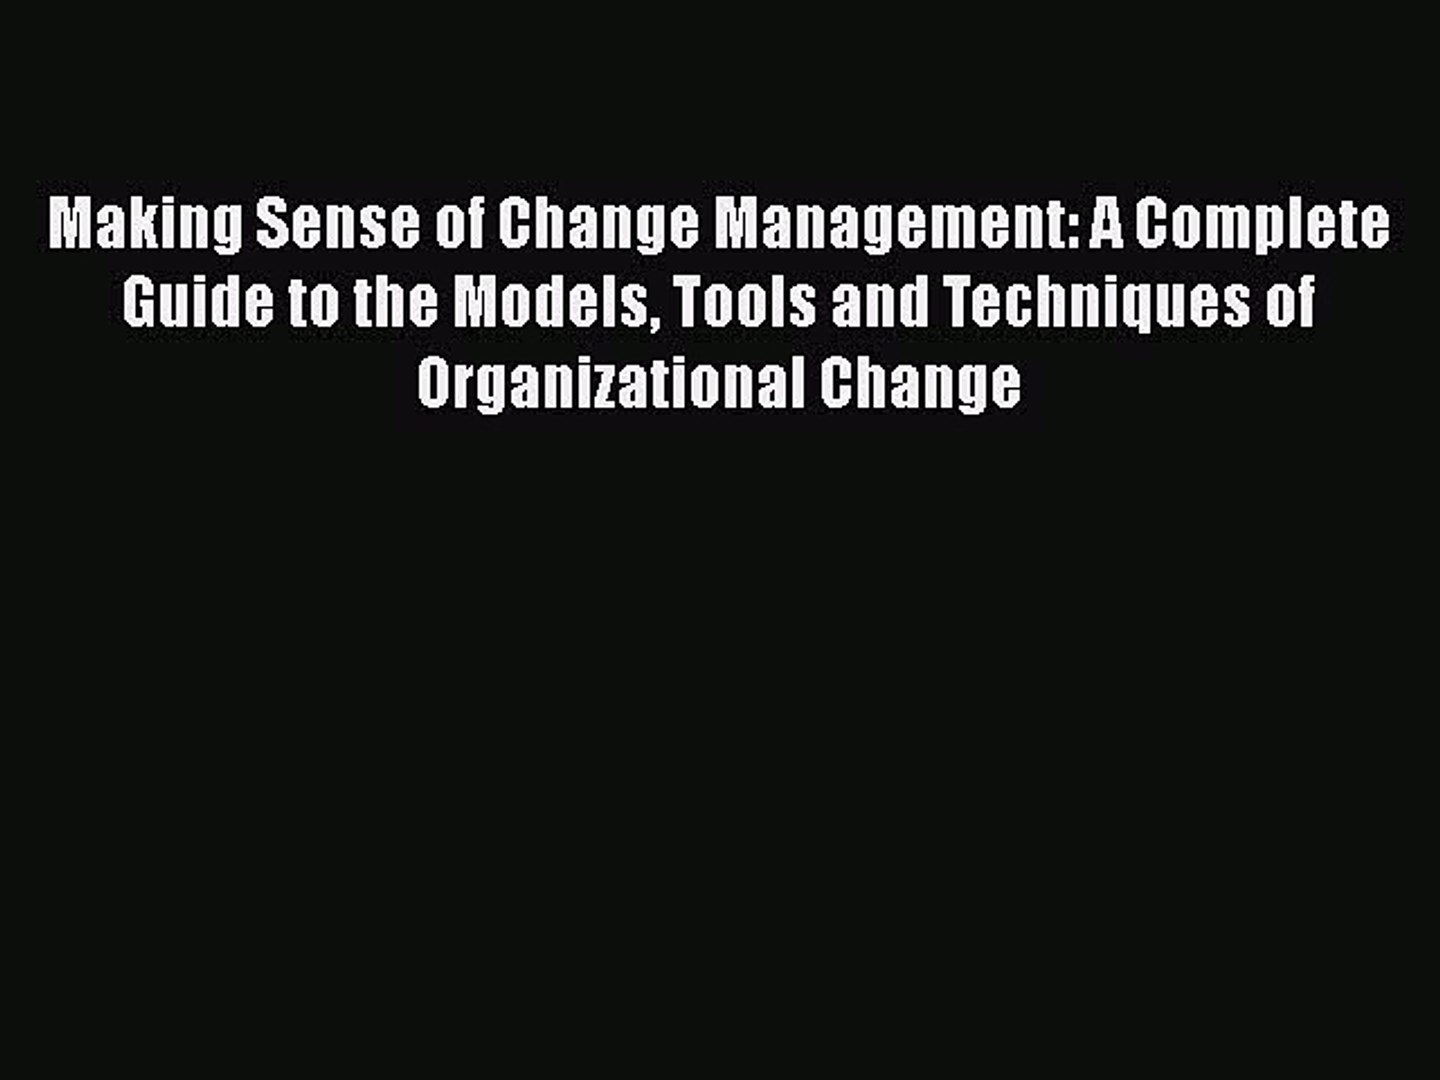 Read Making Sense of Change Management: A Complete Guide to the Models Tools and Techniques